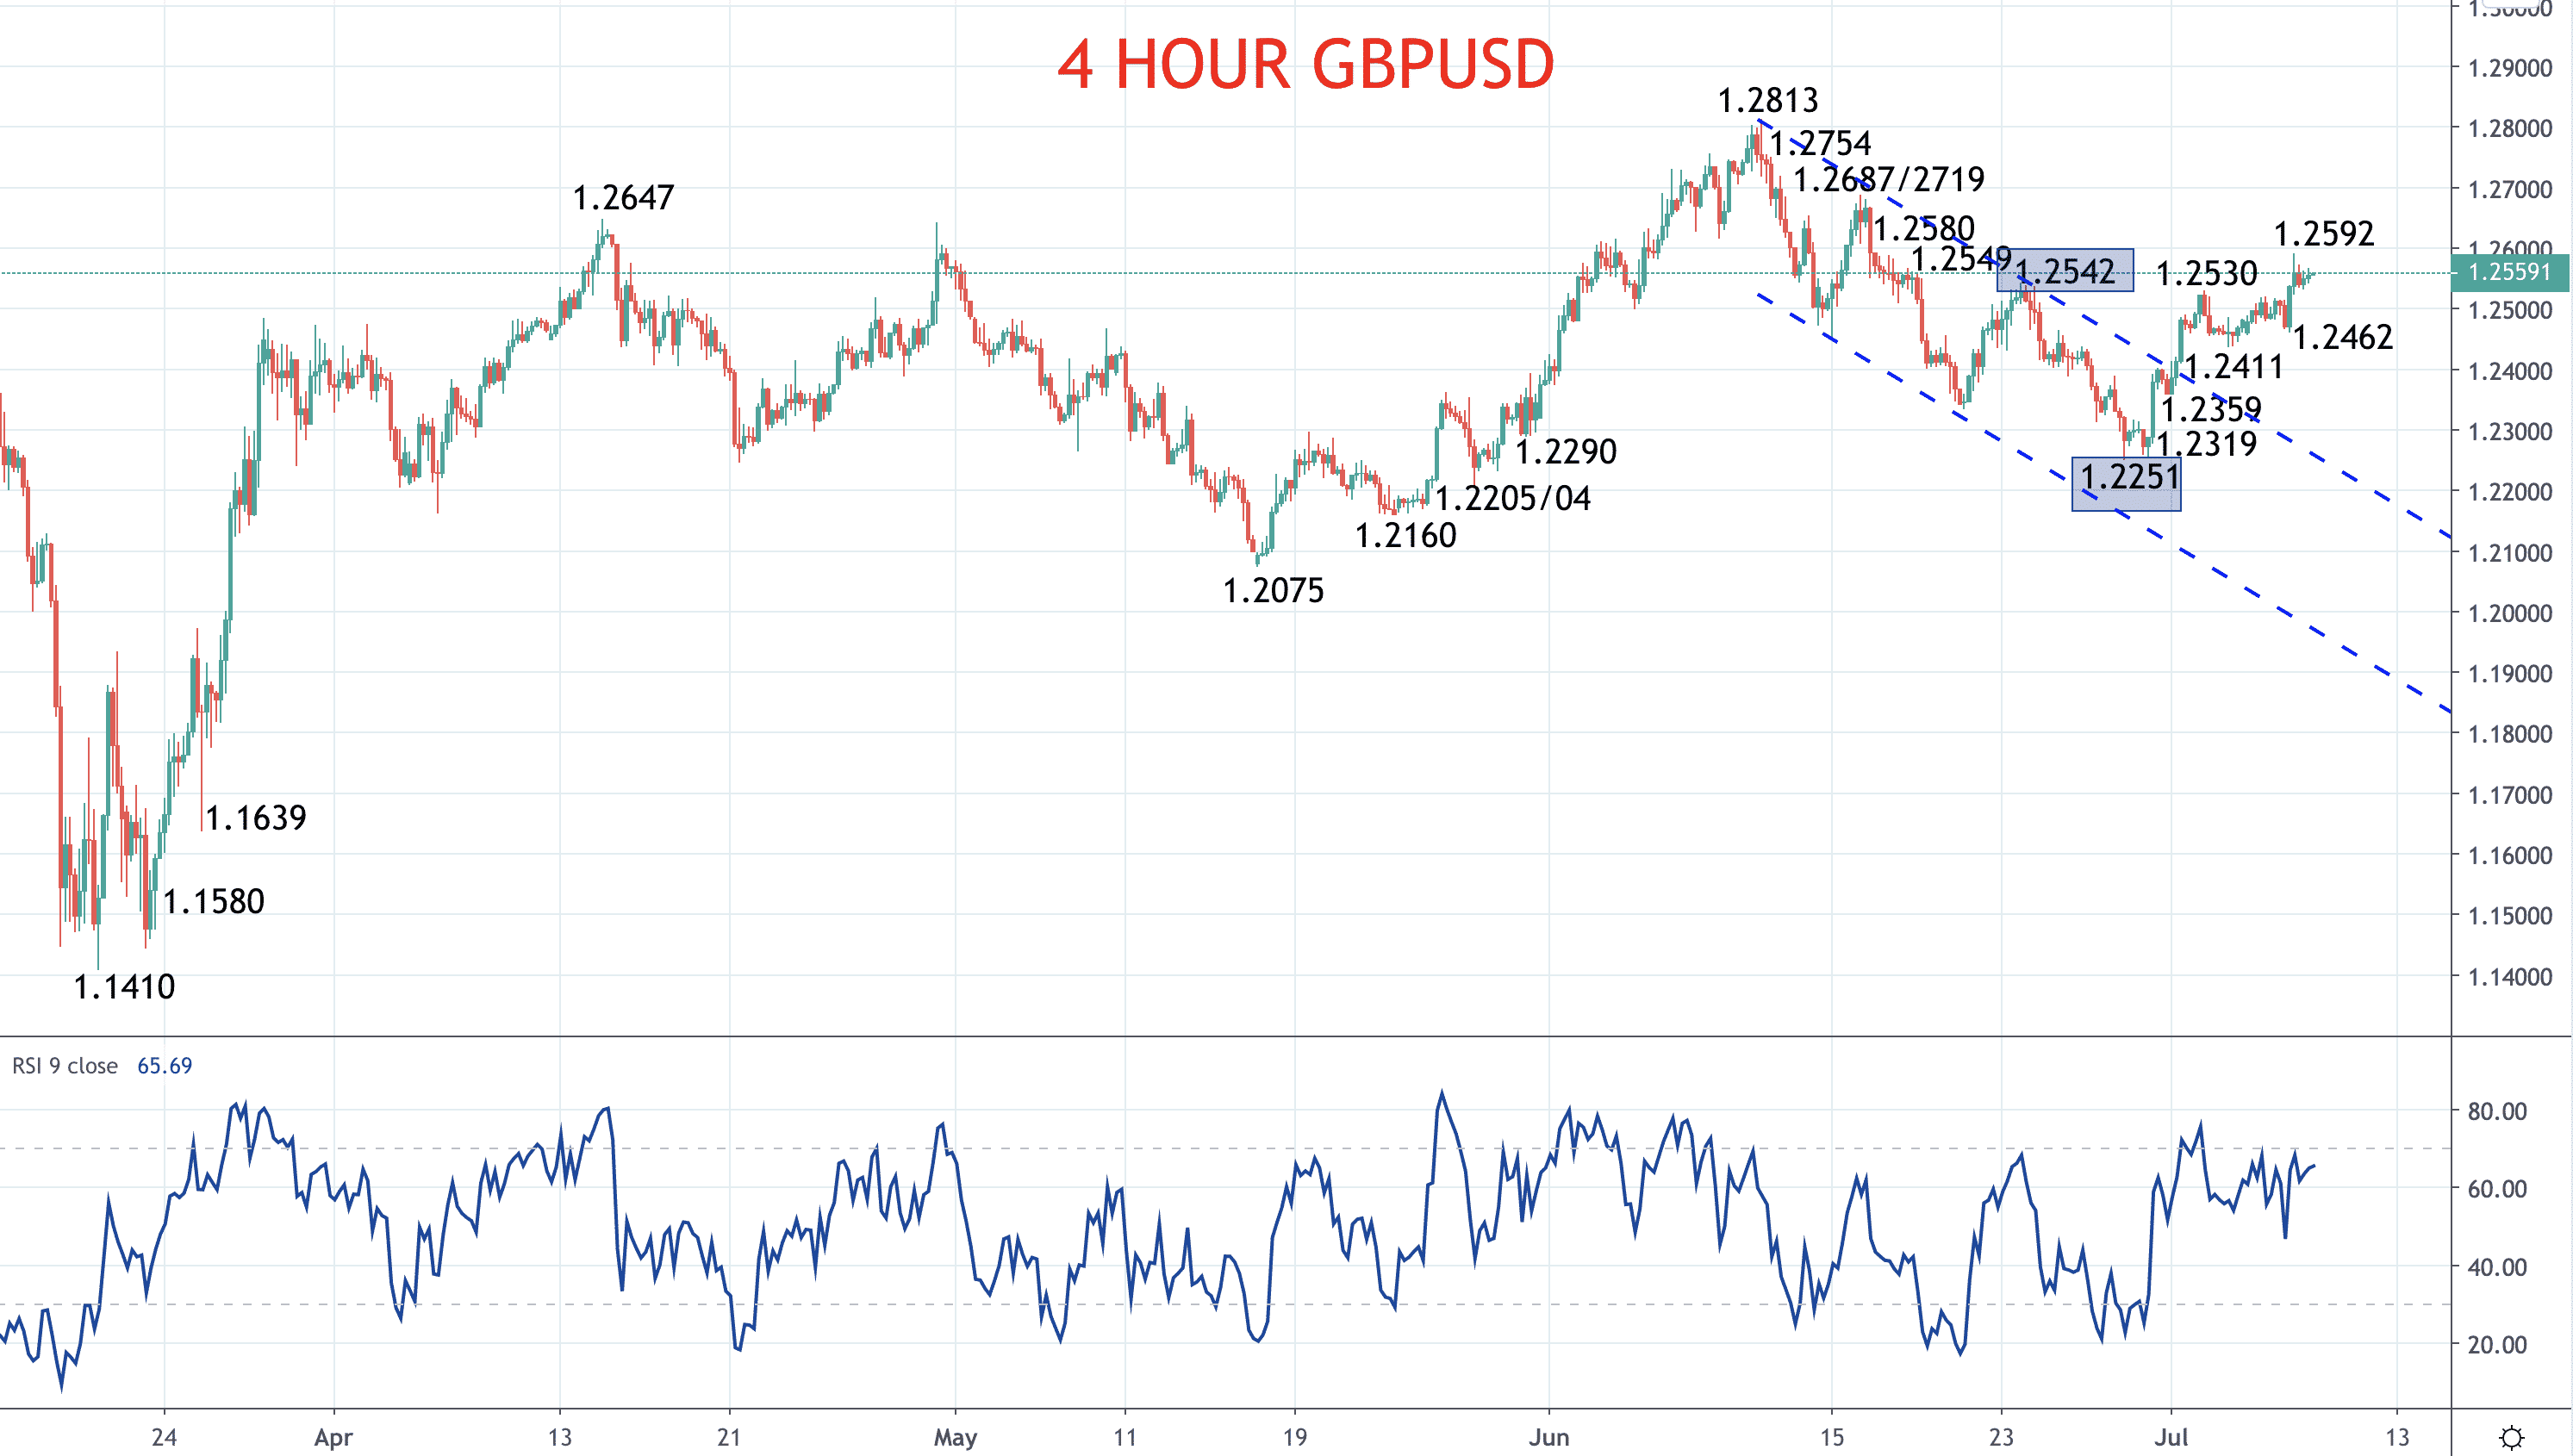 Pound shifts to more bullish (GBPUSD Forecast) Image